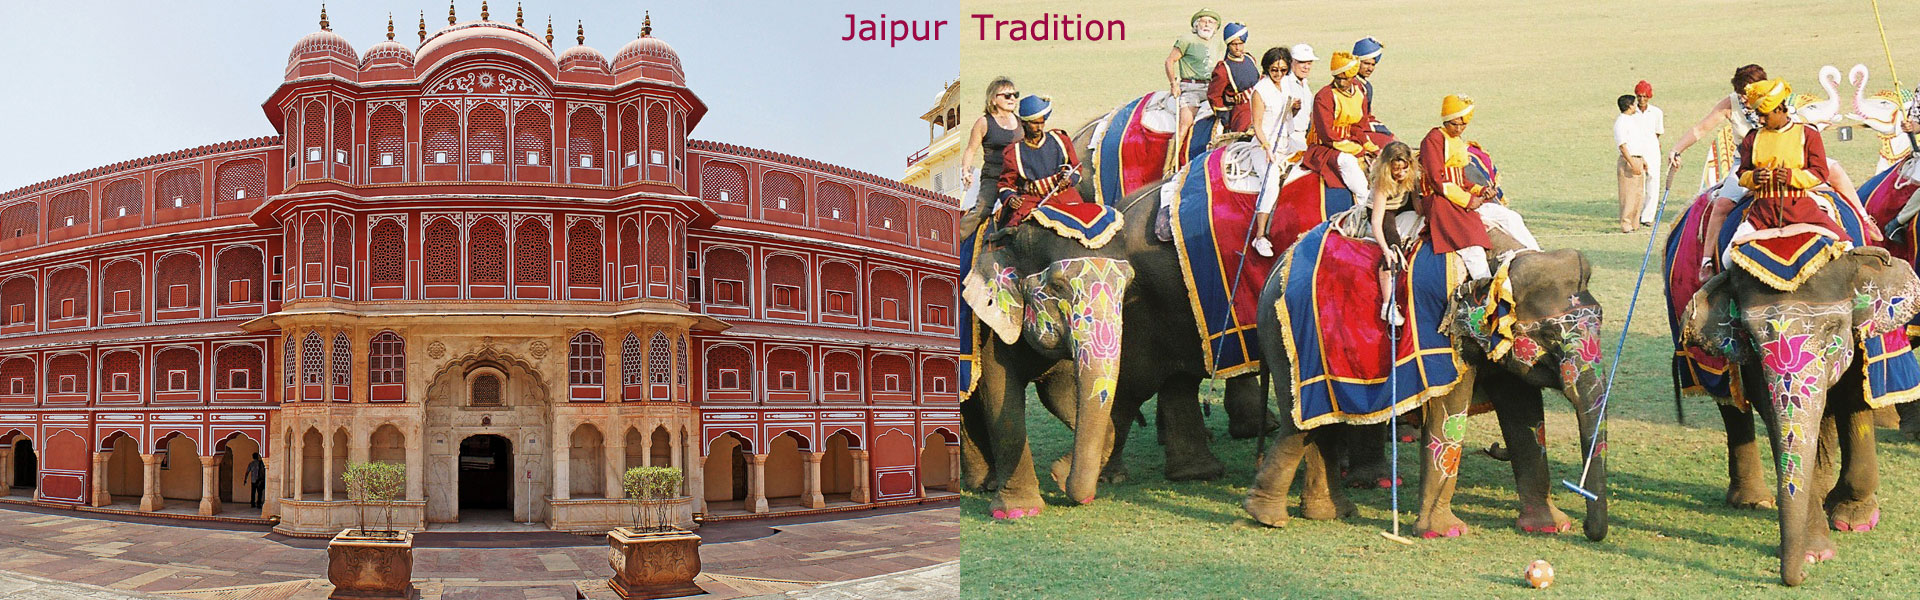 Jaipur Tradition